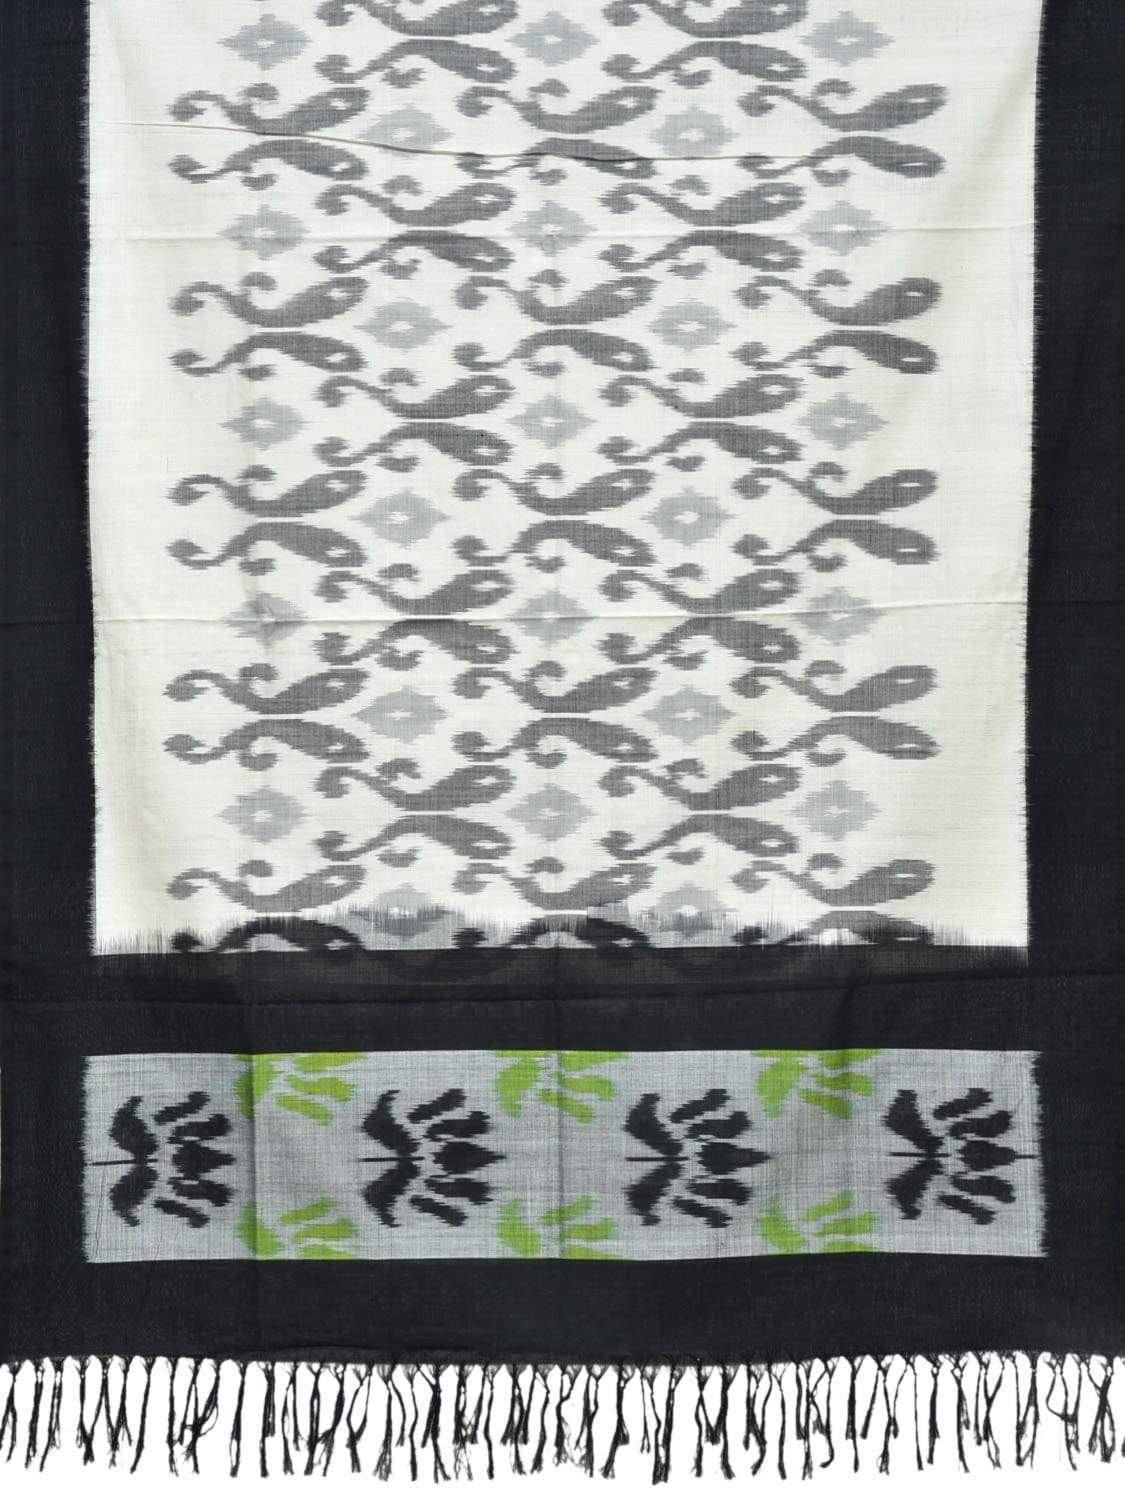 Black and White Pochampally Ikat Cotton Handloom Dupatta with Lotus Flower Design ds1816